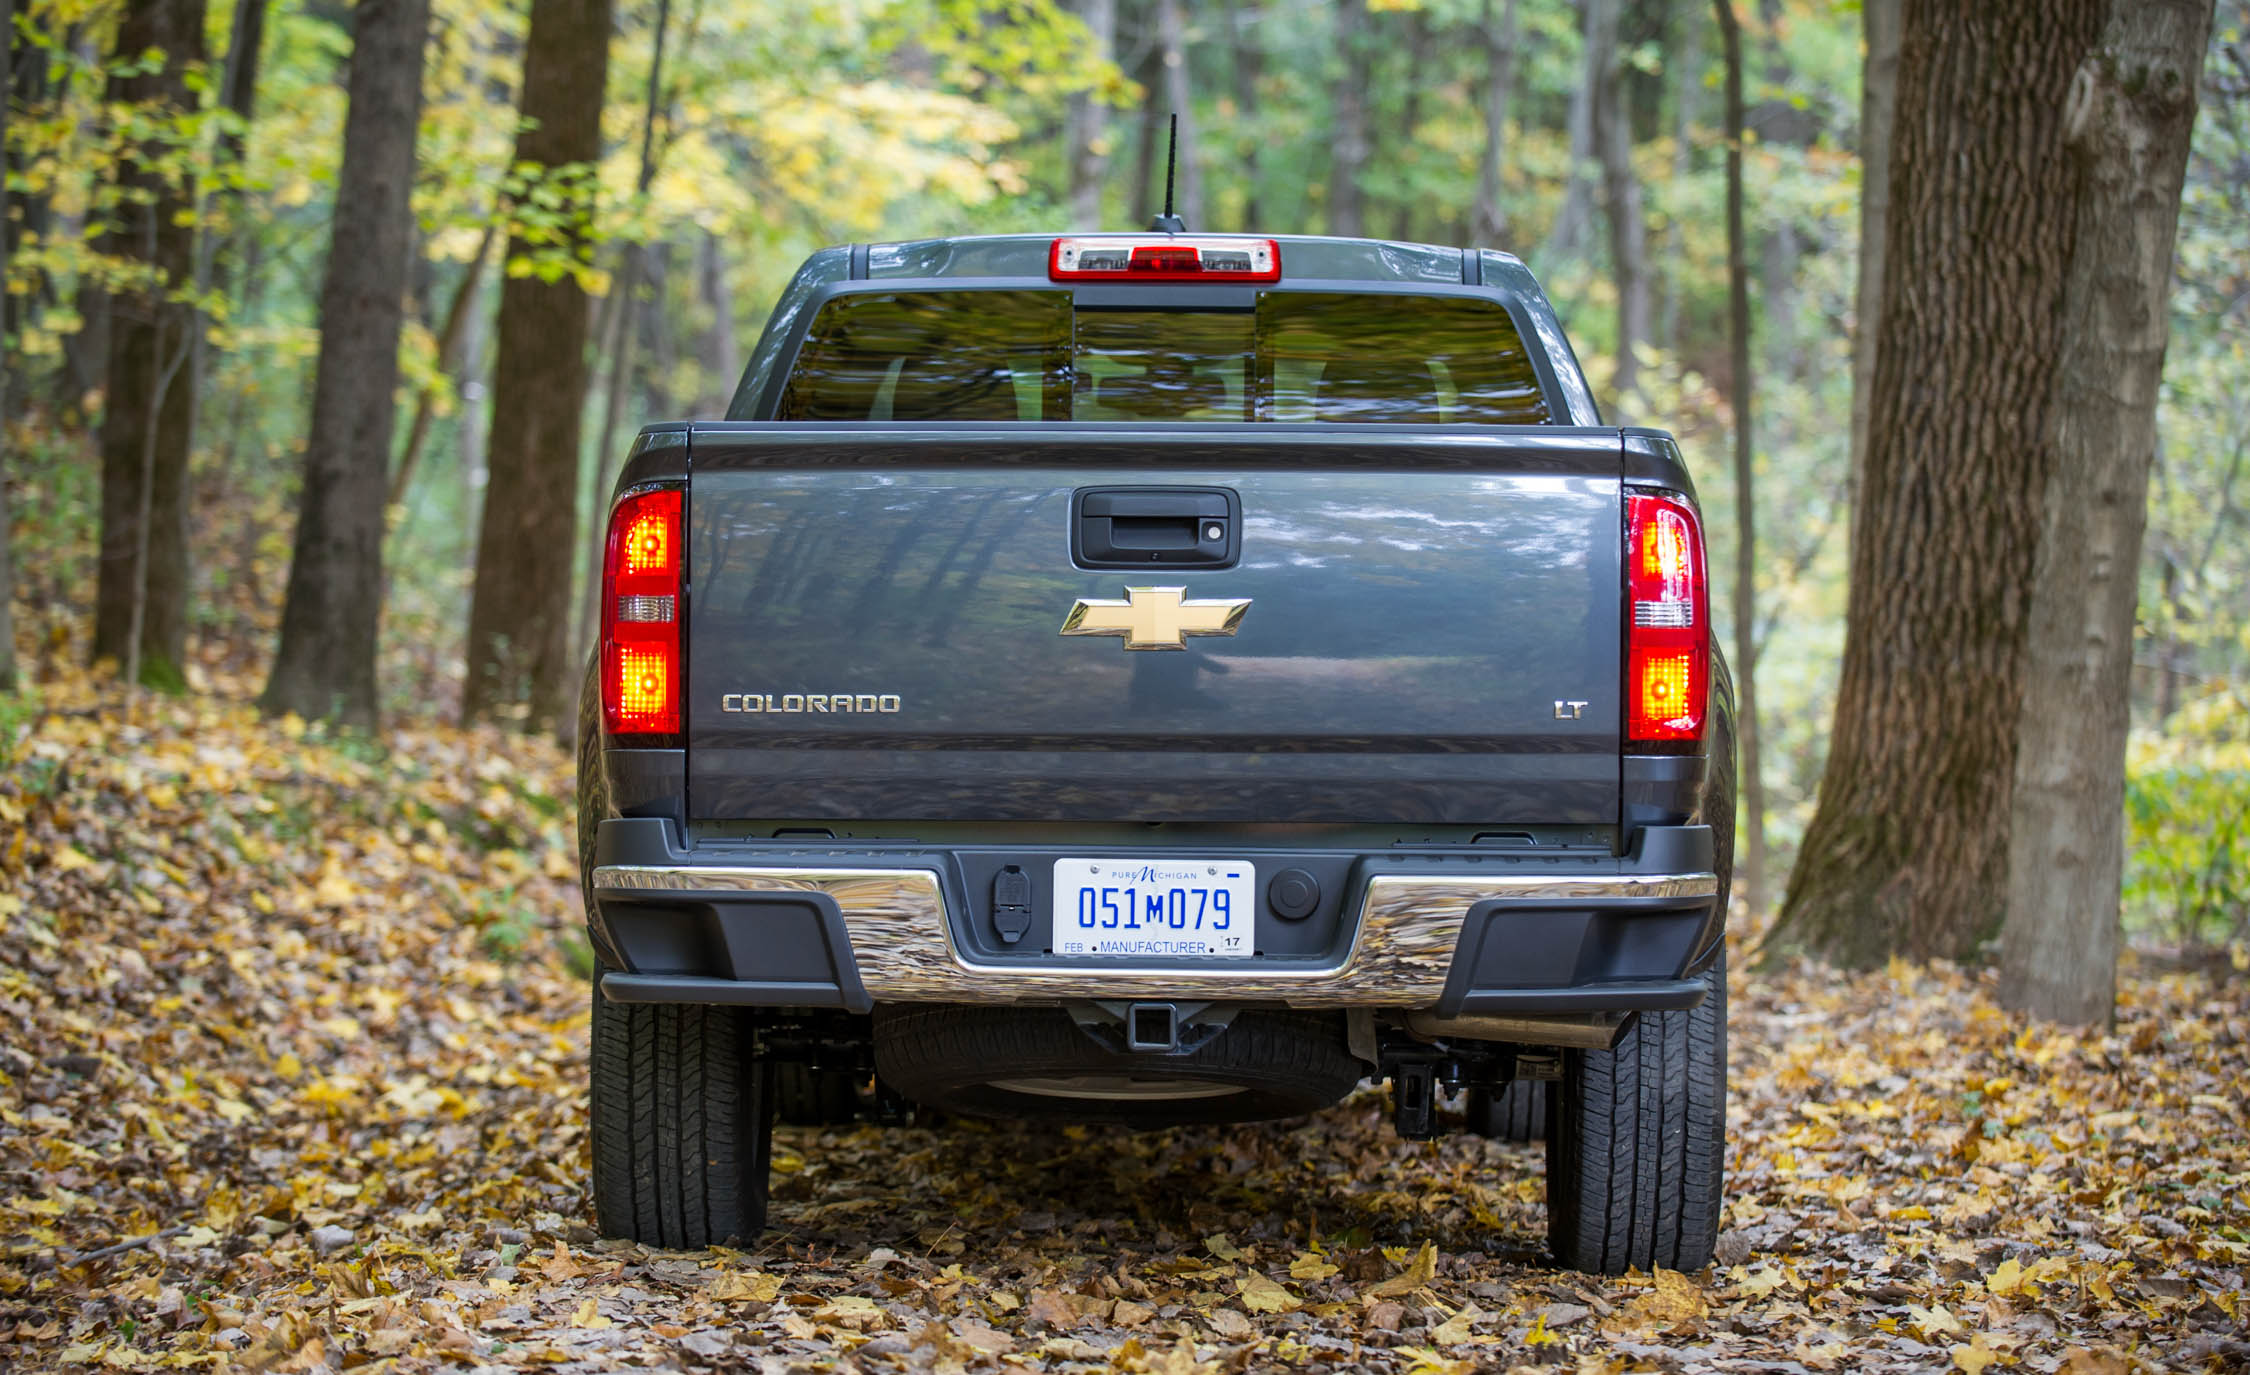 2017 Chevrolet Colorado Exterior Rear End (View 35 of 41)